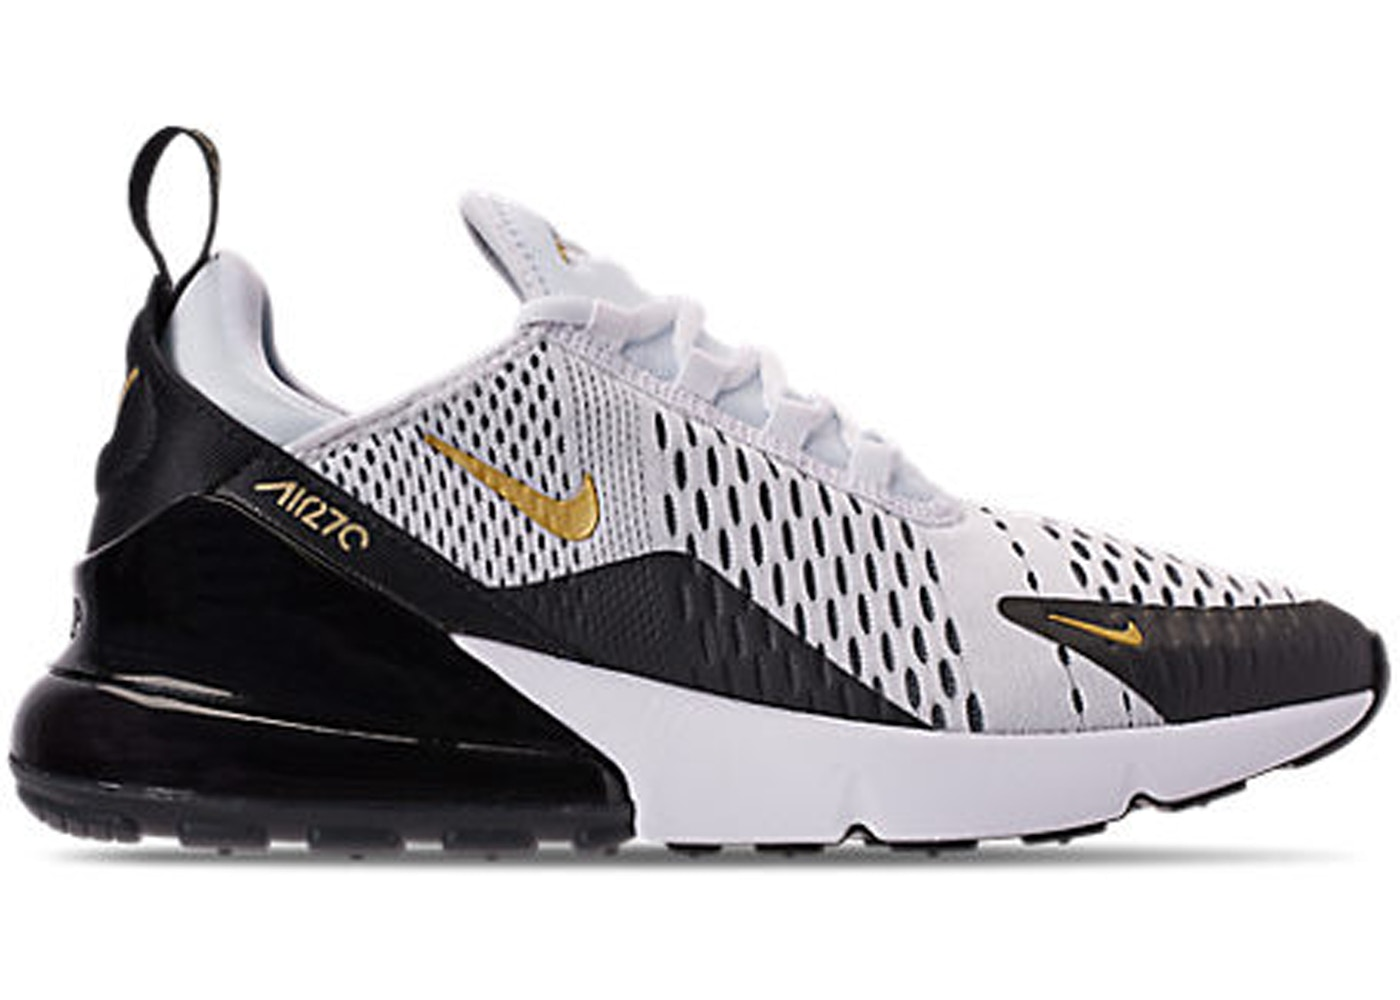 d8cf3ccaf566b Air Max 270 White Metallic Gold Black - AV7892-100